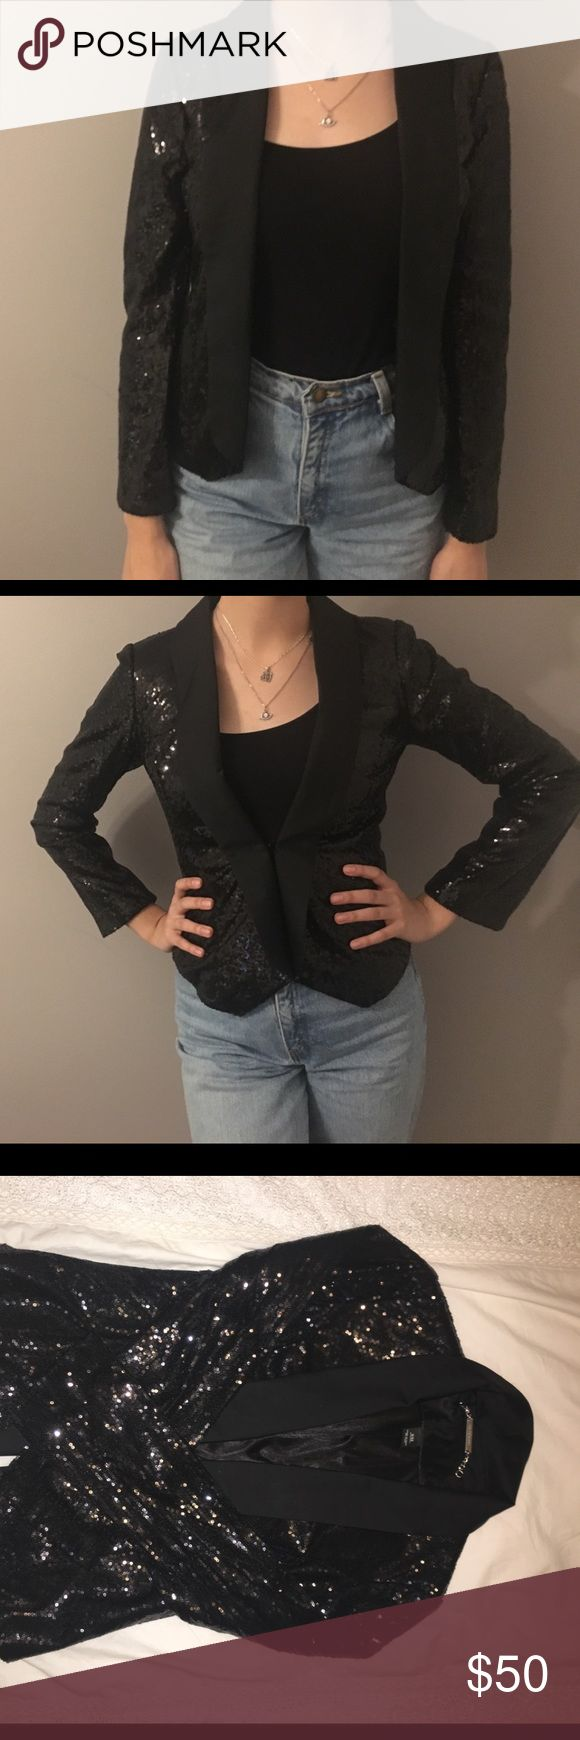 """WHITE HOUSE BLACK MARKET SEQUINED BLAZER Sequined blazer. Worn once. Literally, a GEM. Pictured on me, Im 5'8"""" & 135 pounds. Worn with Forever 21 basic black cami & thrifted high waisted """"mom"""" jeans! If you want more pics, I can provide! Willing to negotiate (: White House Black Market Jackets & Coats Blazers"""